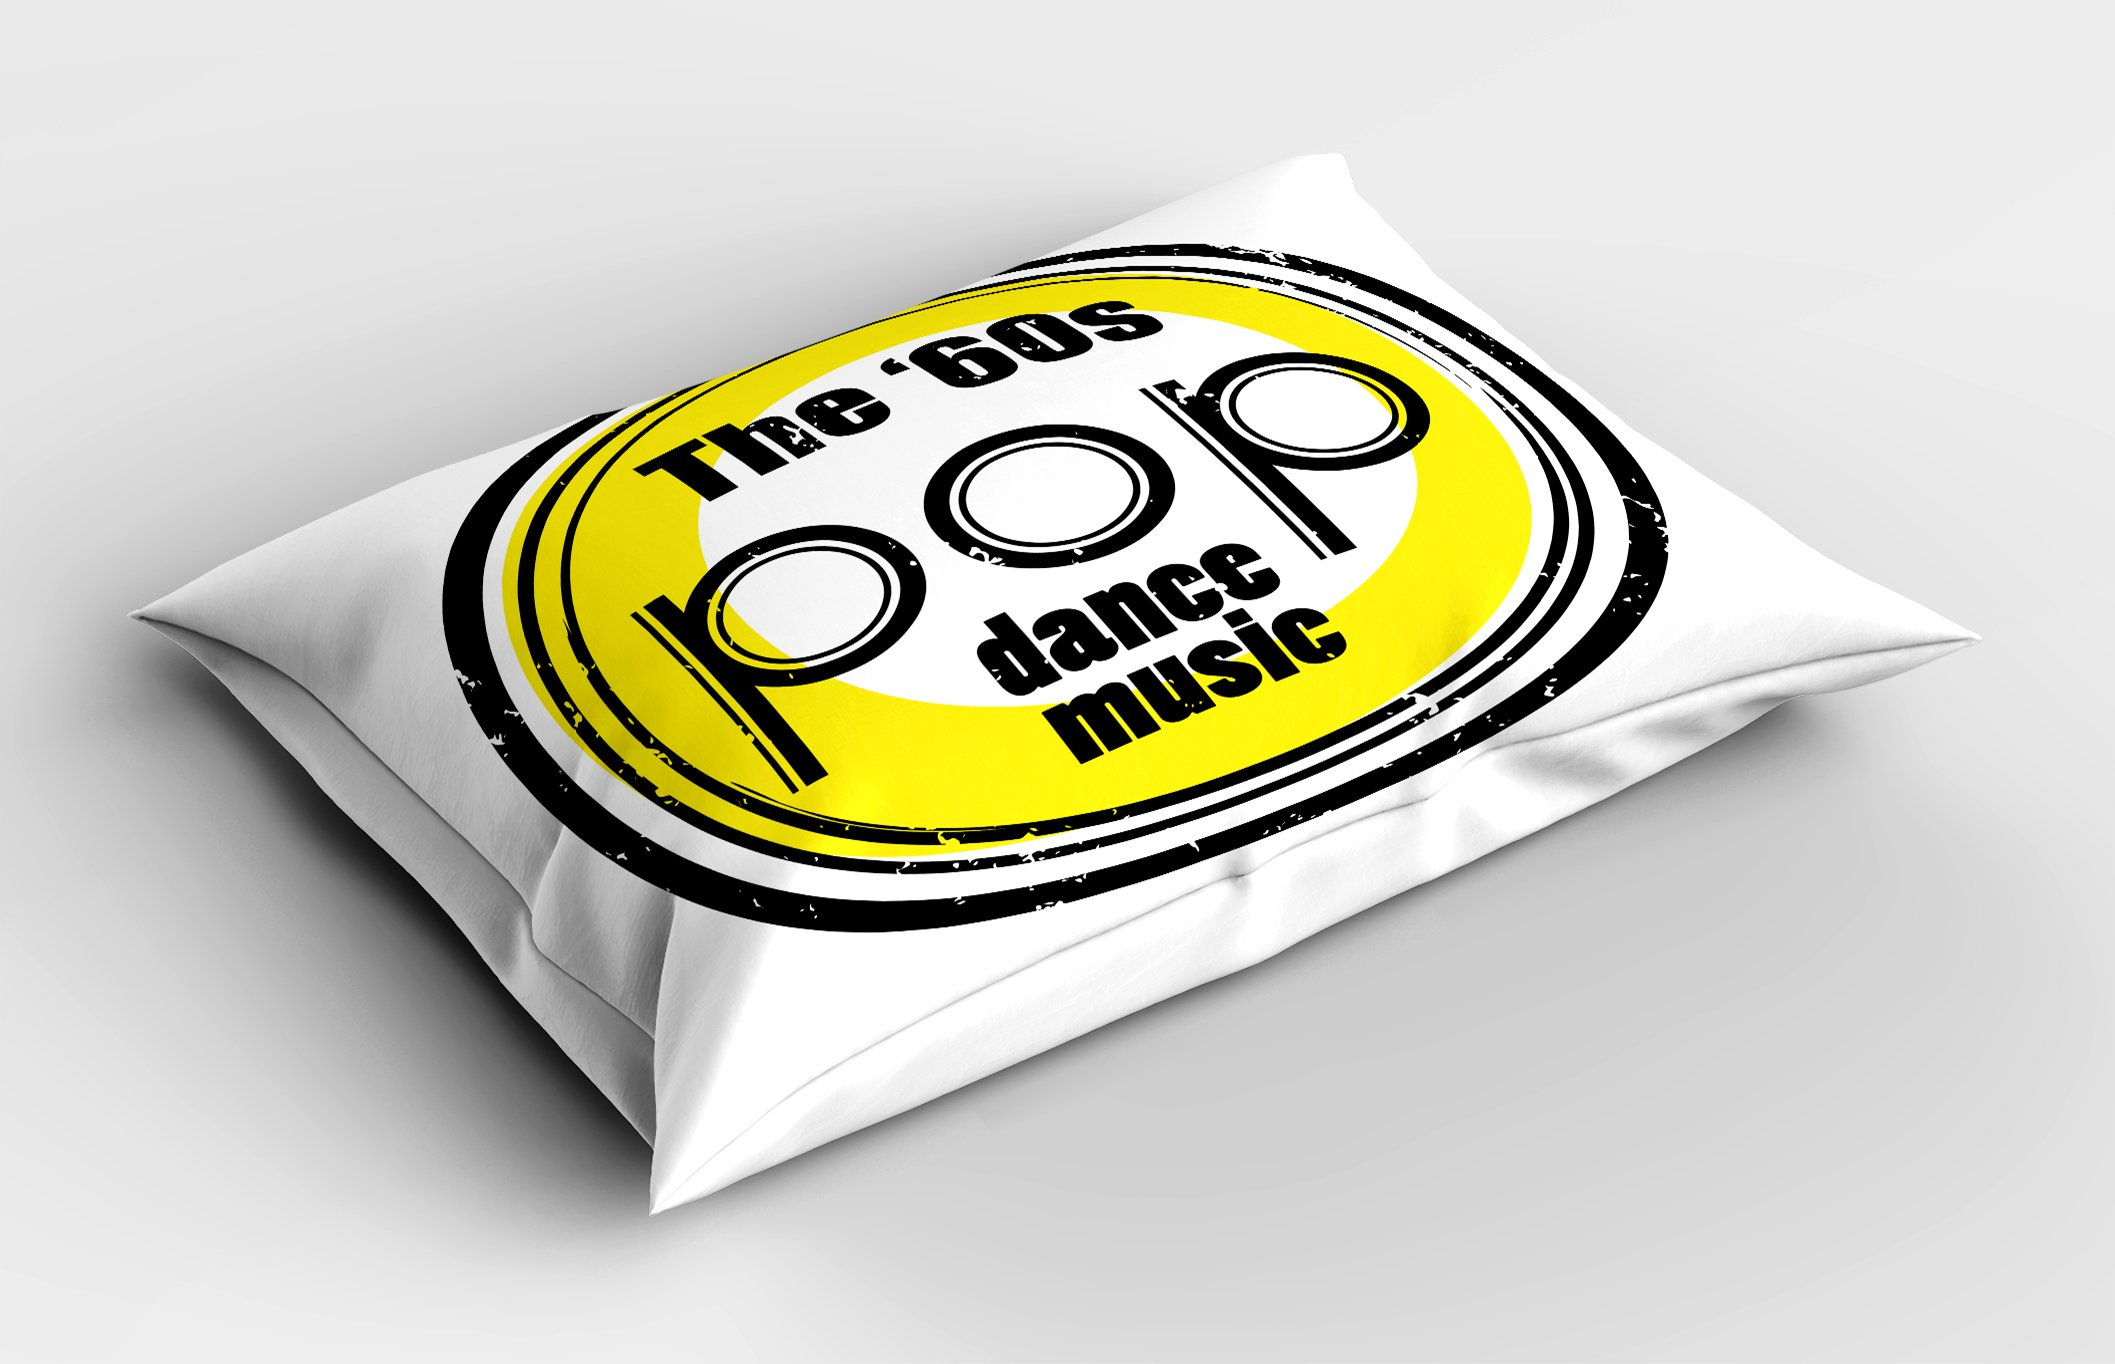 Ambesonne 1960s Pillow Sham, Party Music Night Club Bar Band Pop Dance Festival Classic Good Old Days Art, Decorative Standard Size Printed Pillowcase, 26 X 20 inches, Black White Yellow by Ambesonne (Image #2)